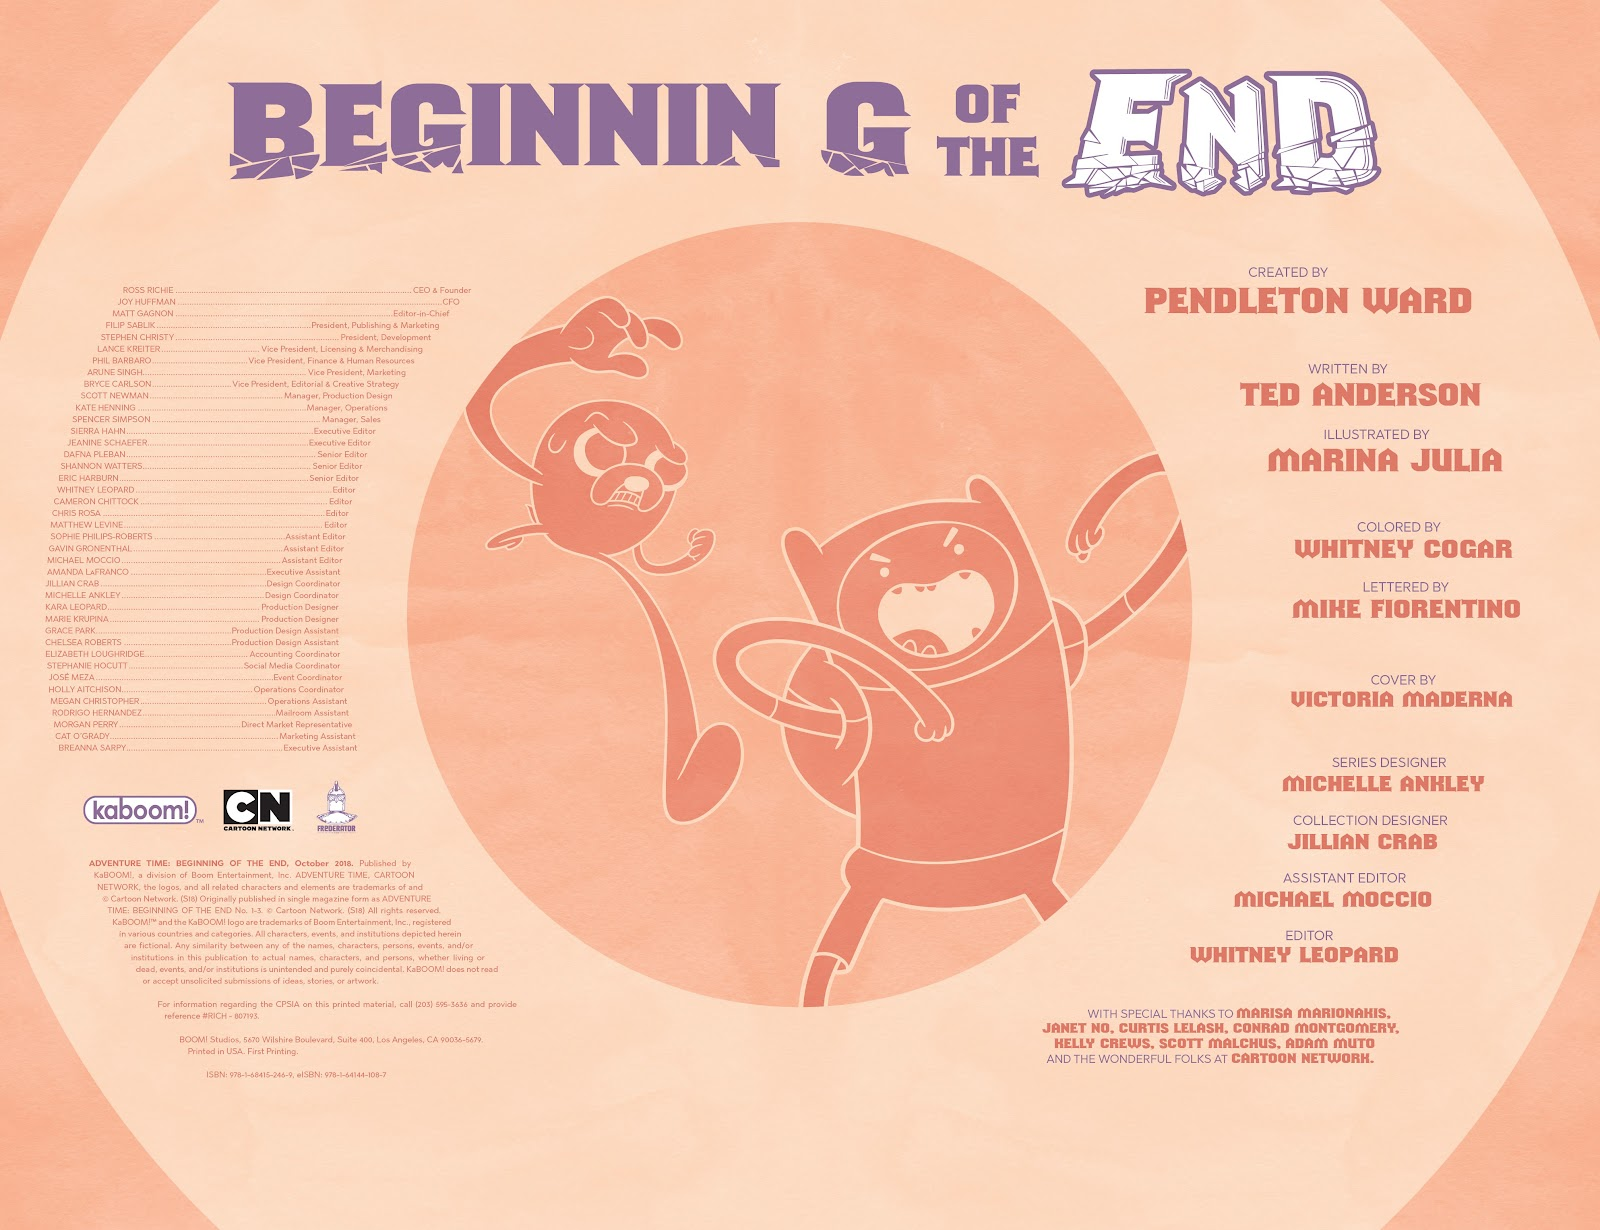 Read online Adventure Time: Beginning of the End comic -  Issue # _TPB - 4